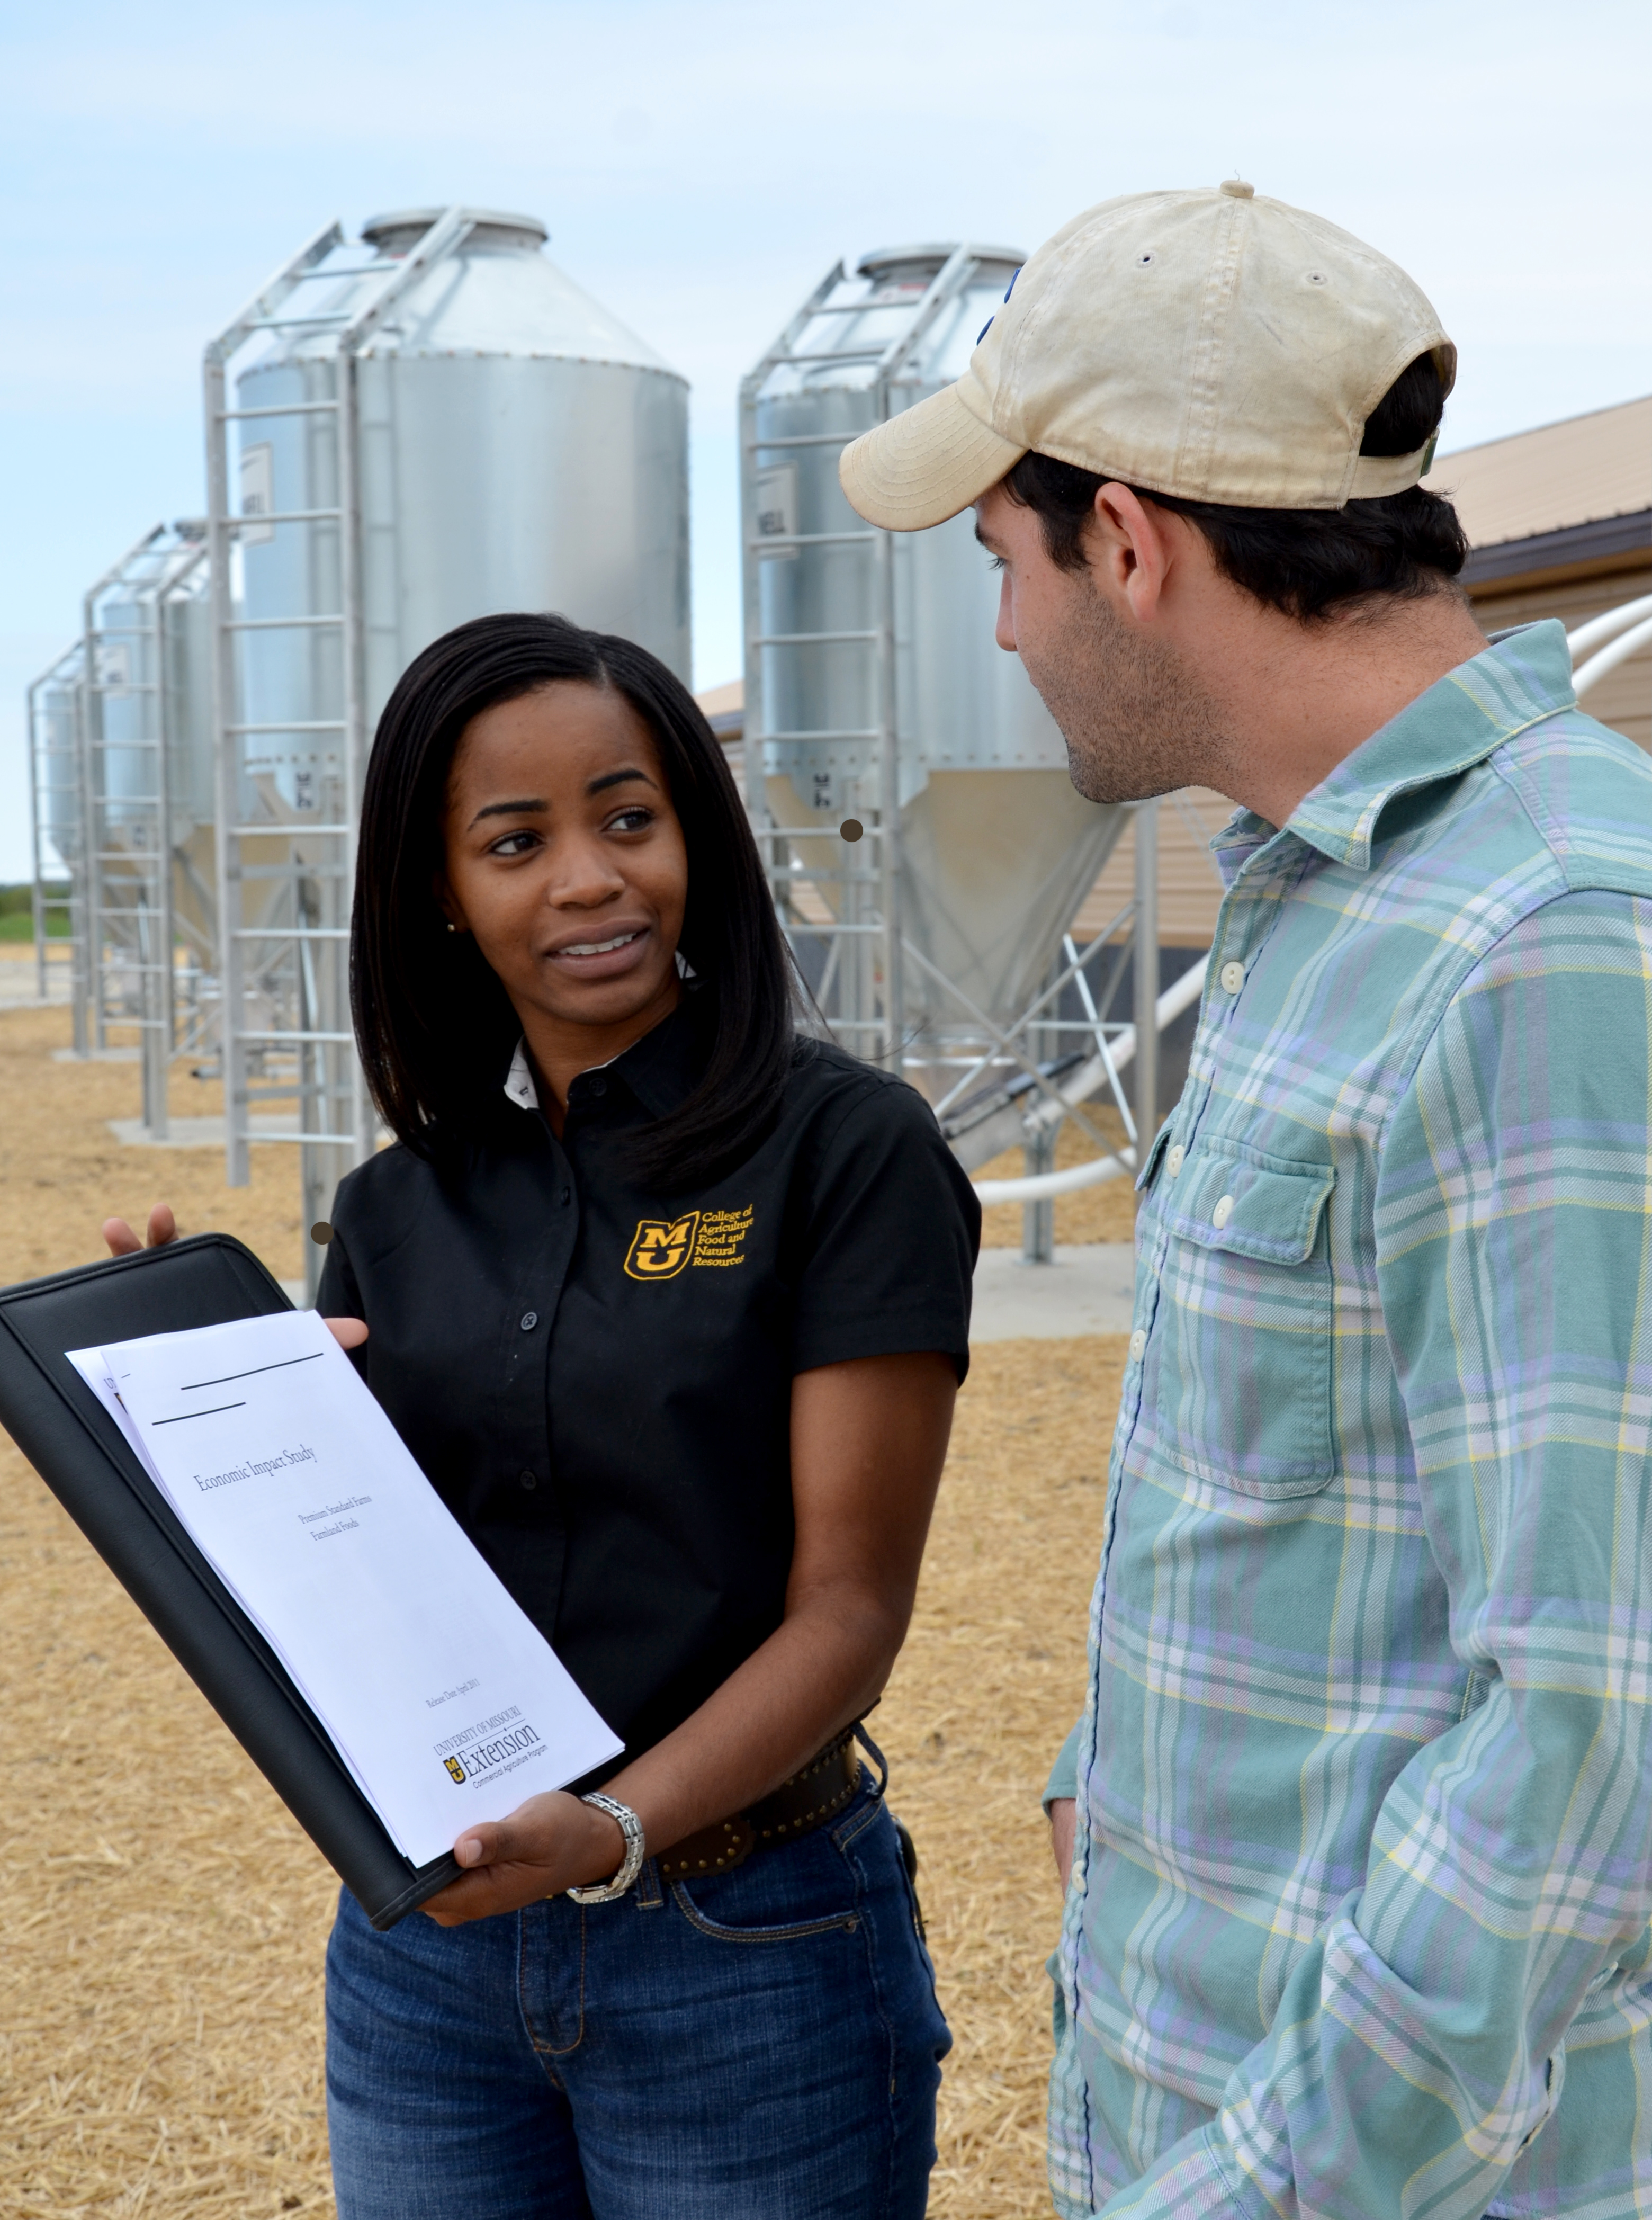 Seanicaa Edwards, left,  swine economist for MU Extension's Commercial Agriculture program, with Joseph Dolginow, MU graduate research assistant in agricultural economics. The Commercial Ag program is one example of the land-grant university's role in adv